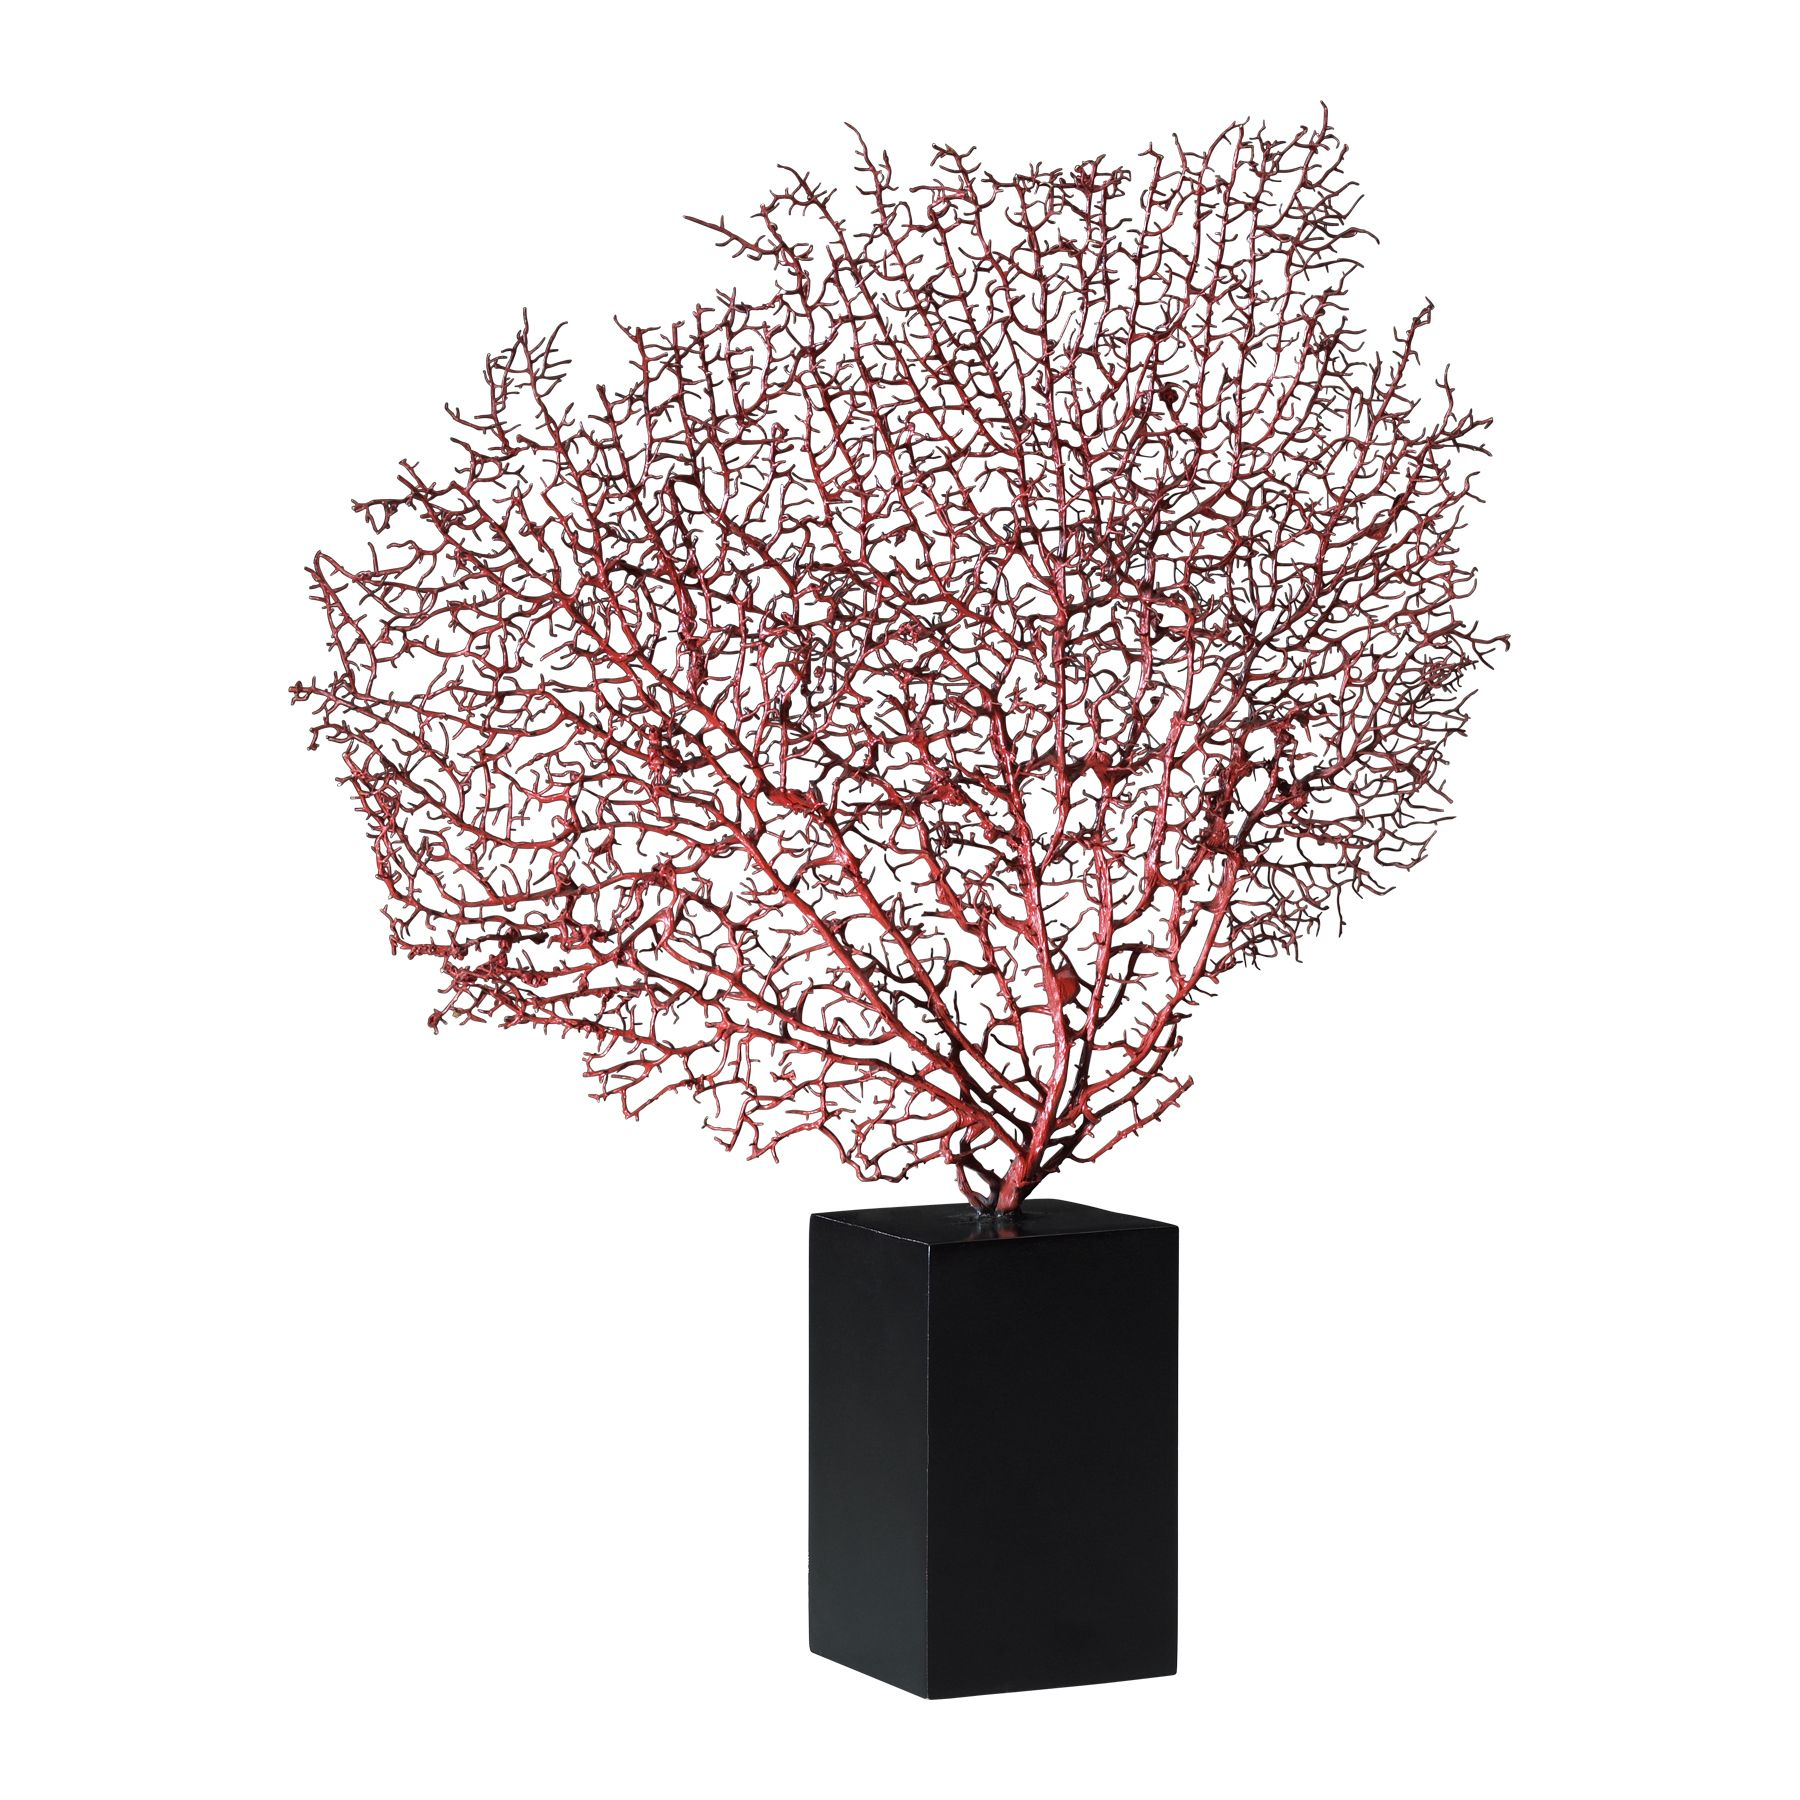 Red Coral Decorative Accent...or Spray Paint Floral Accent